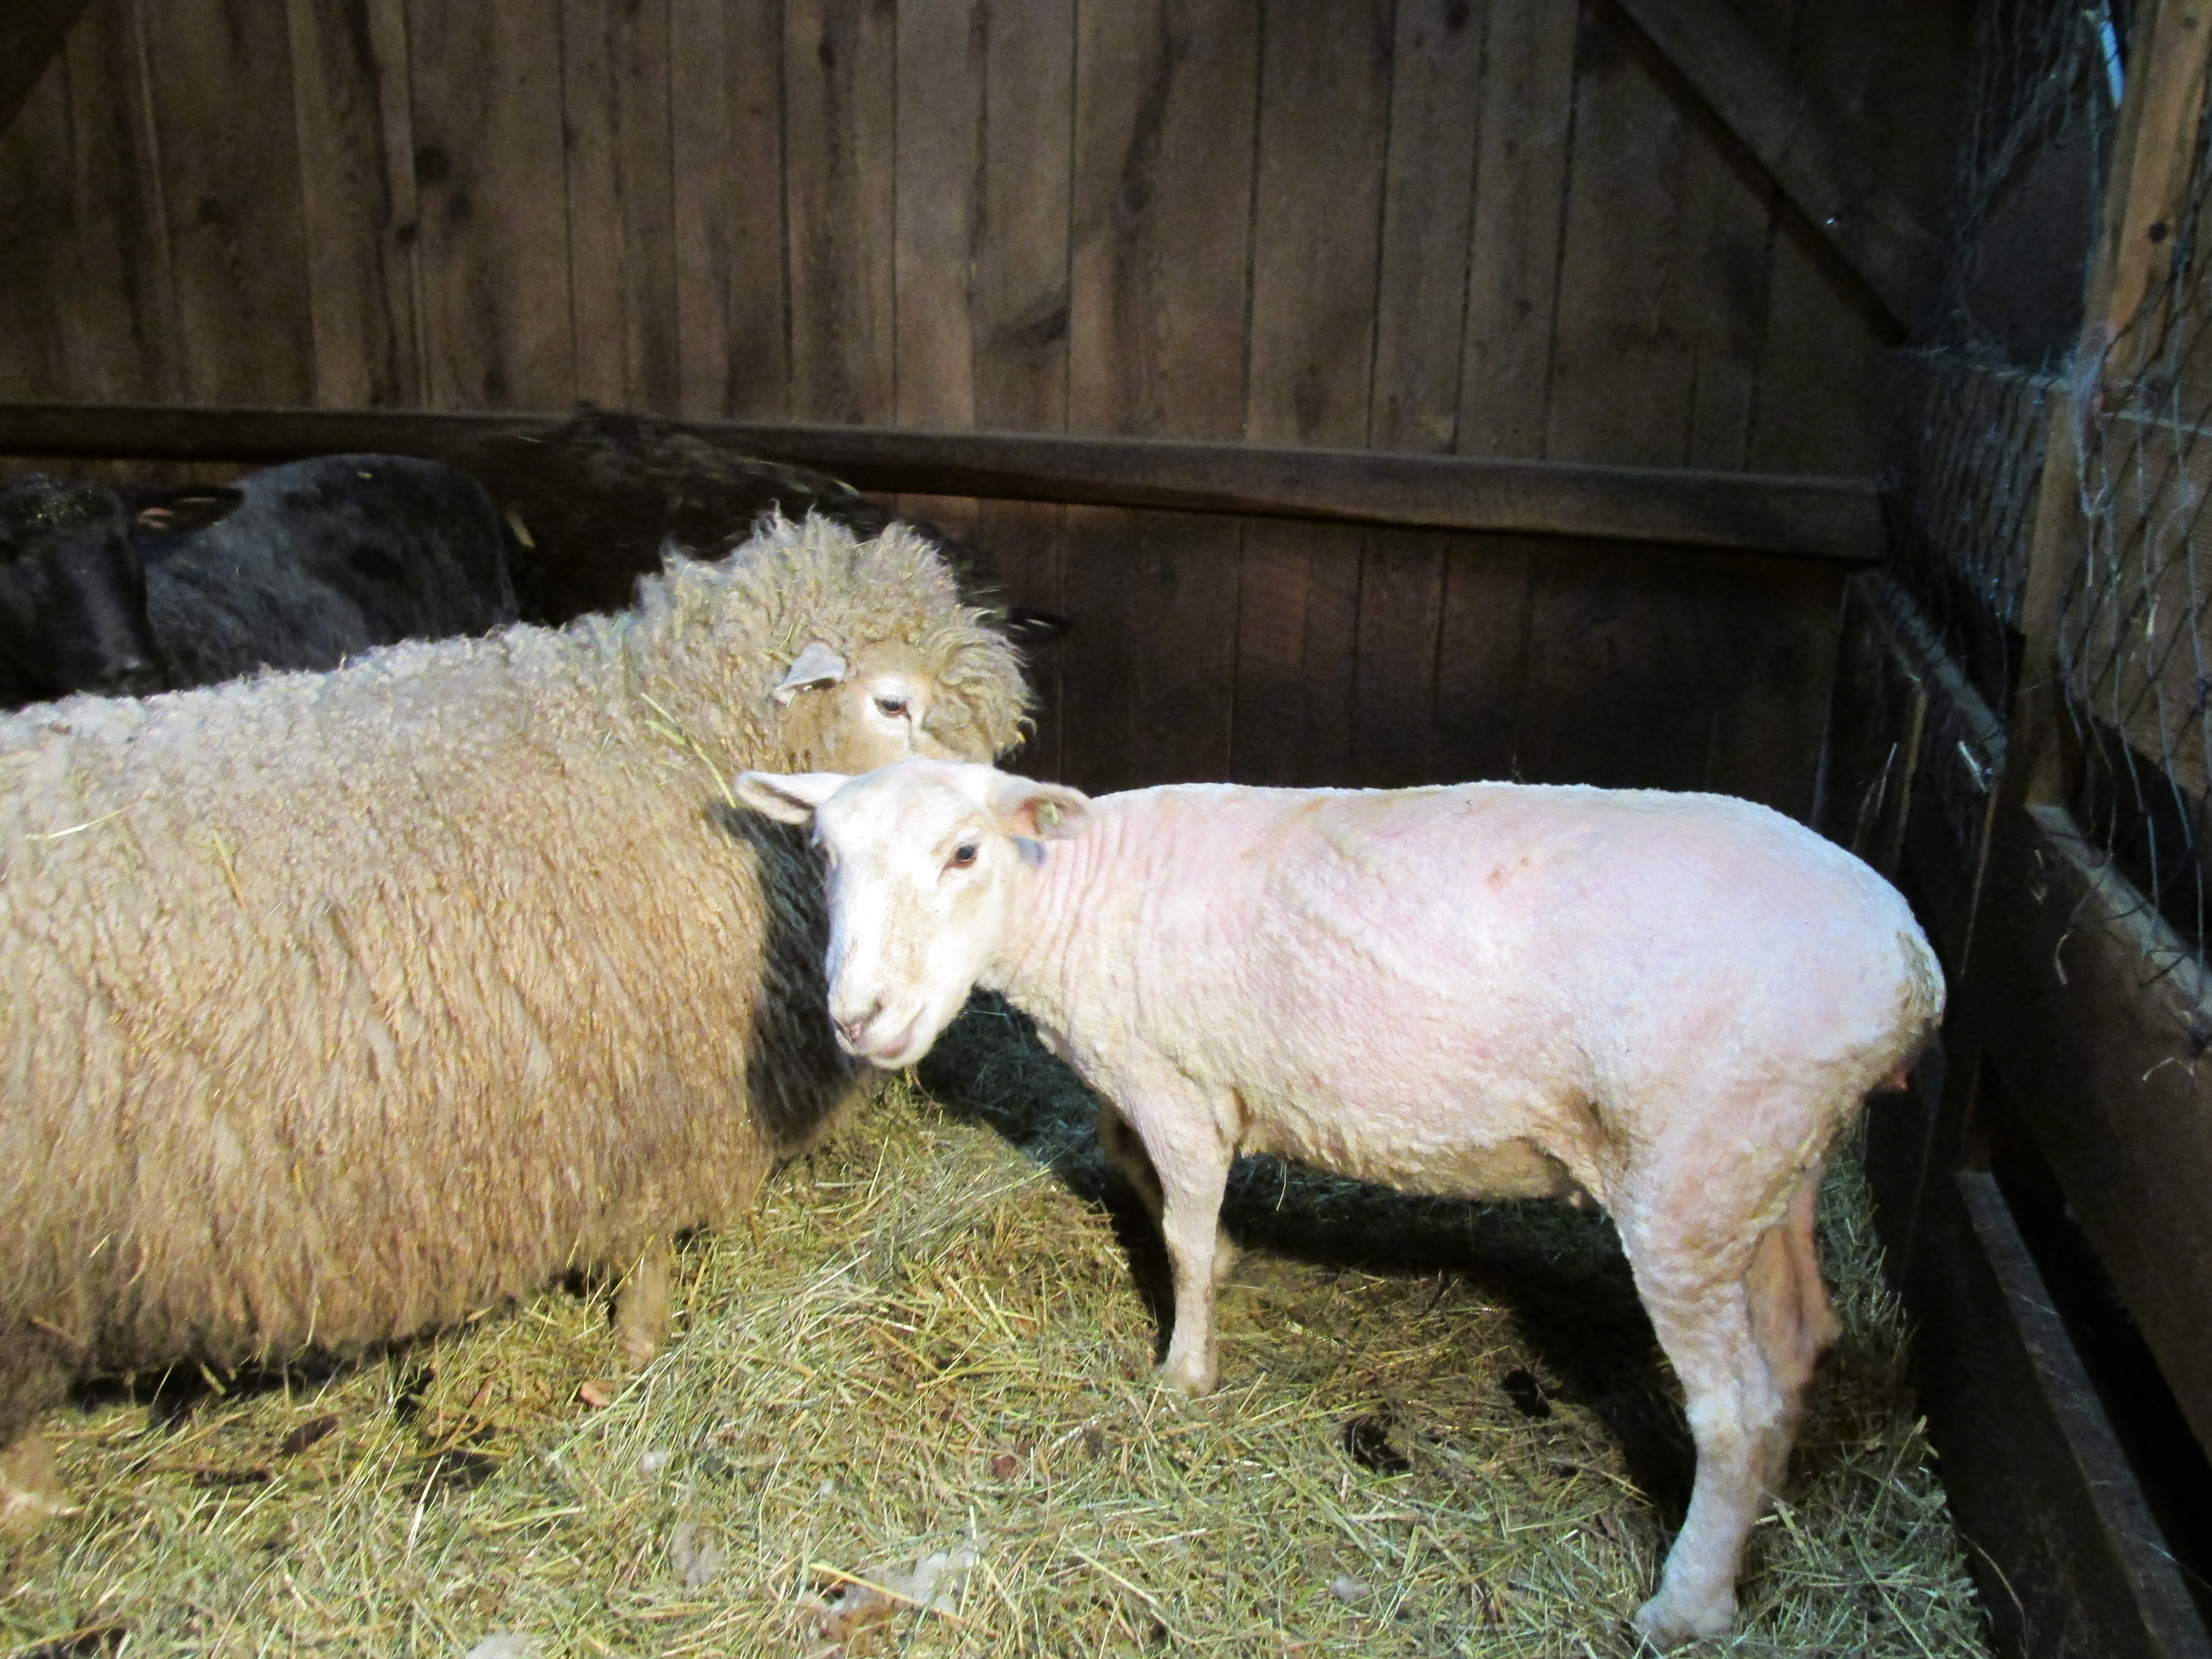 sheering sheep Online shopping from a great selection at pet supplies store.